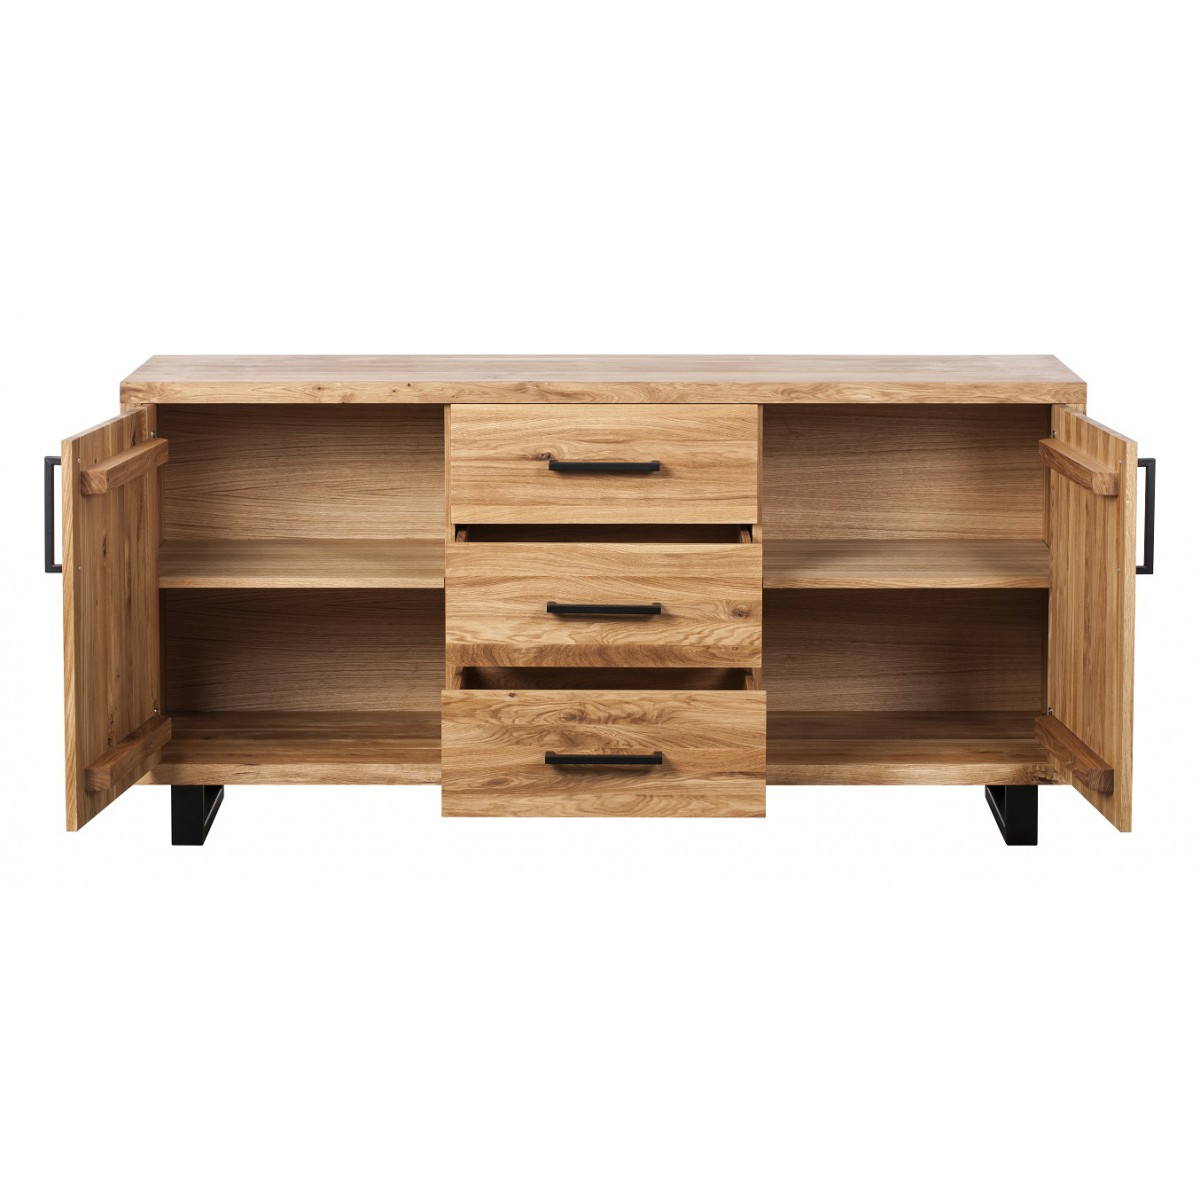 Quantum Oak Petite 2 Door And 3 Drawers Sideboard on floating media console 2